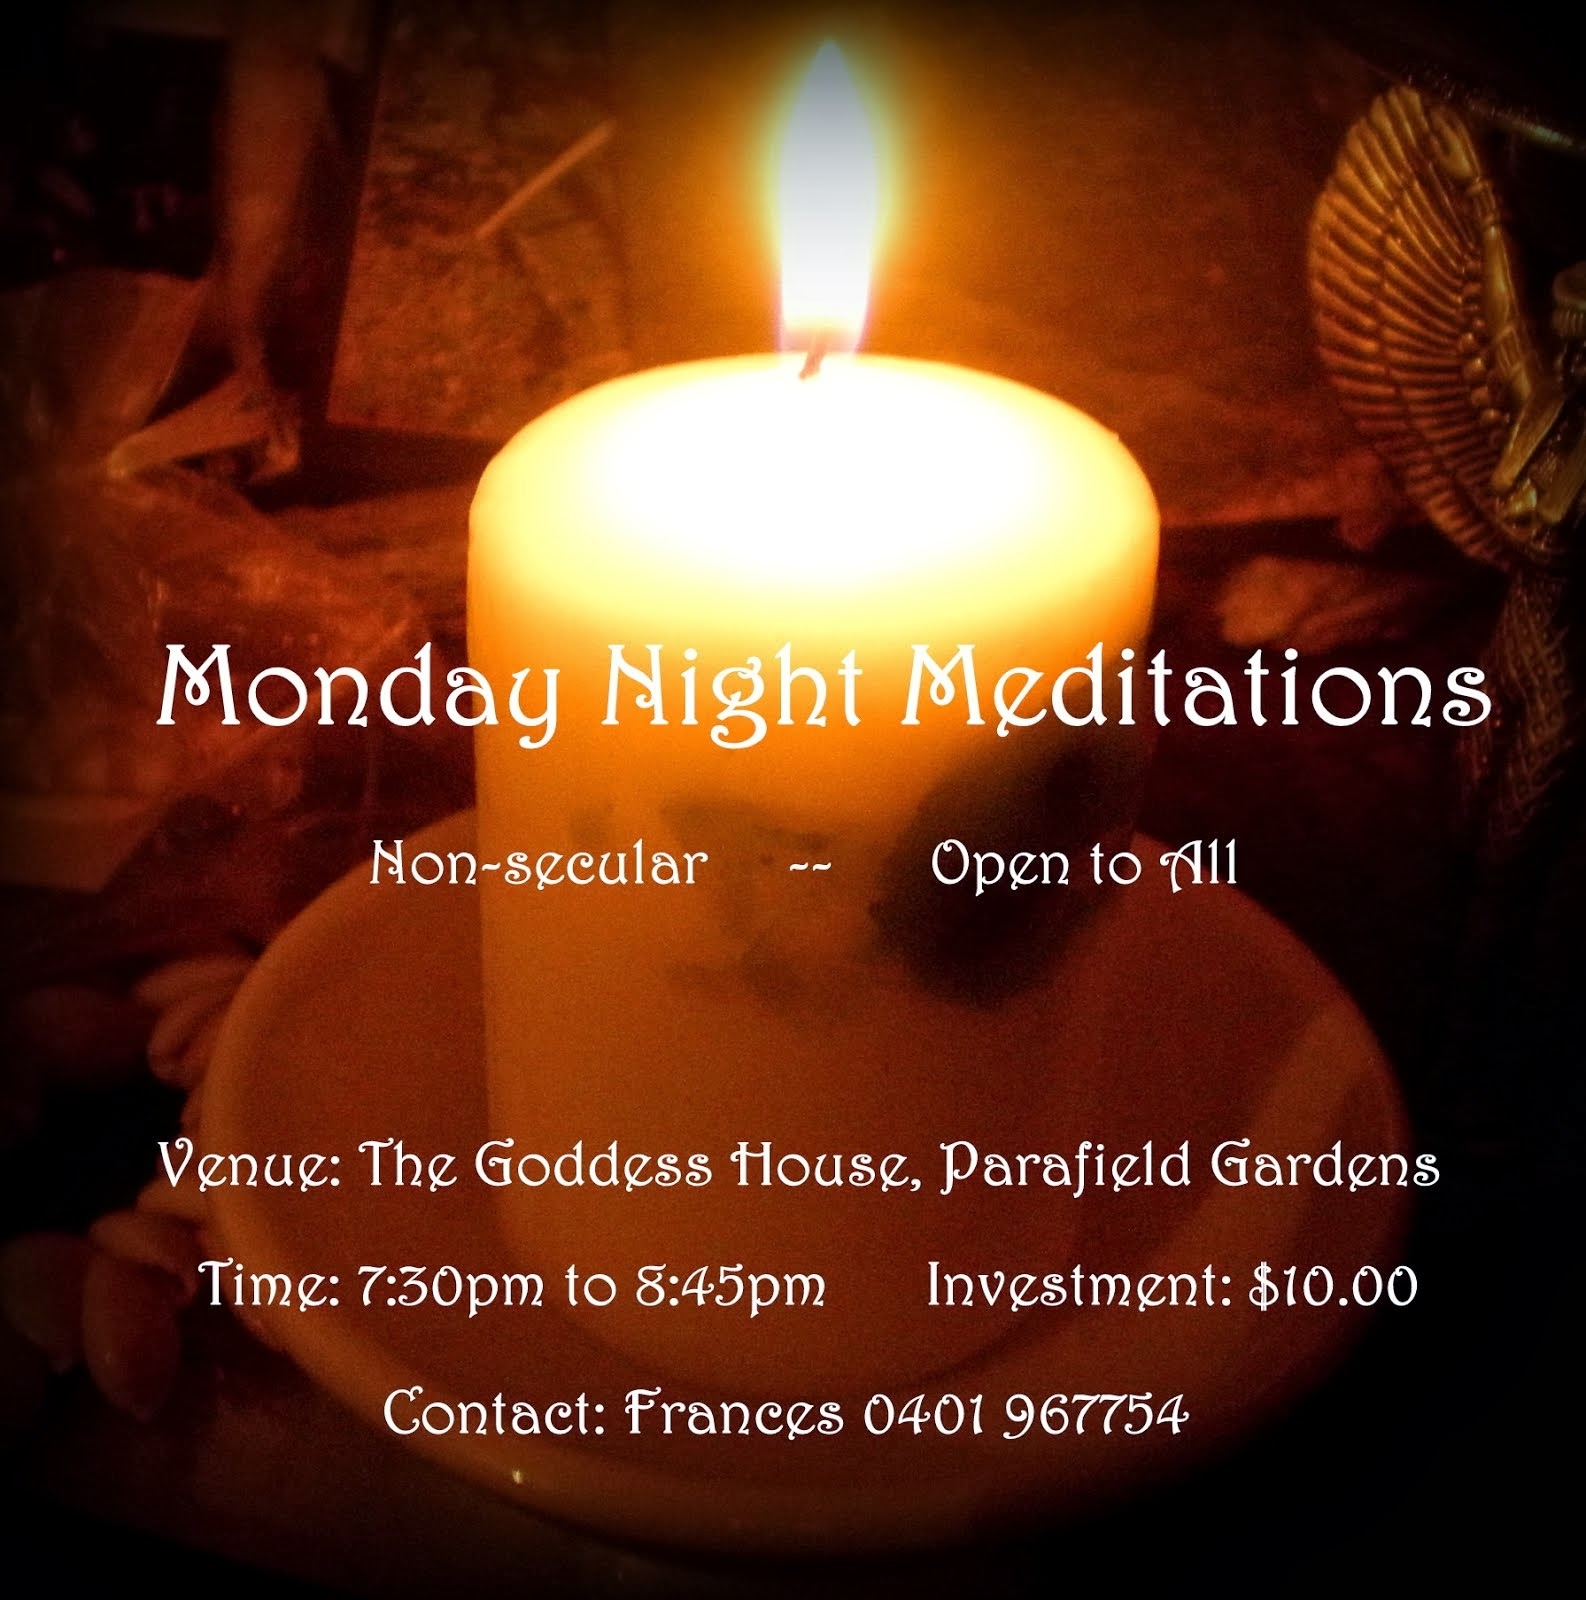 Monday Night Meditations (February 2014)